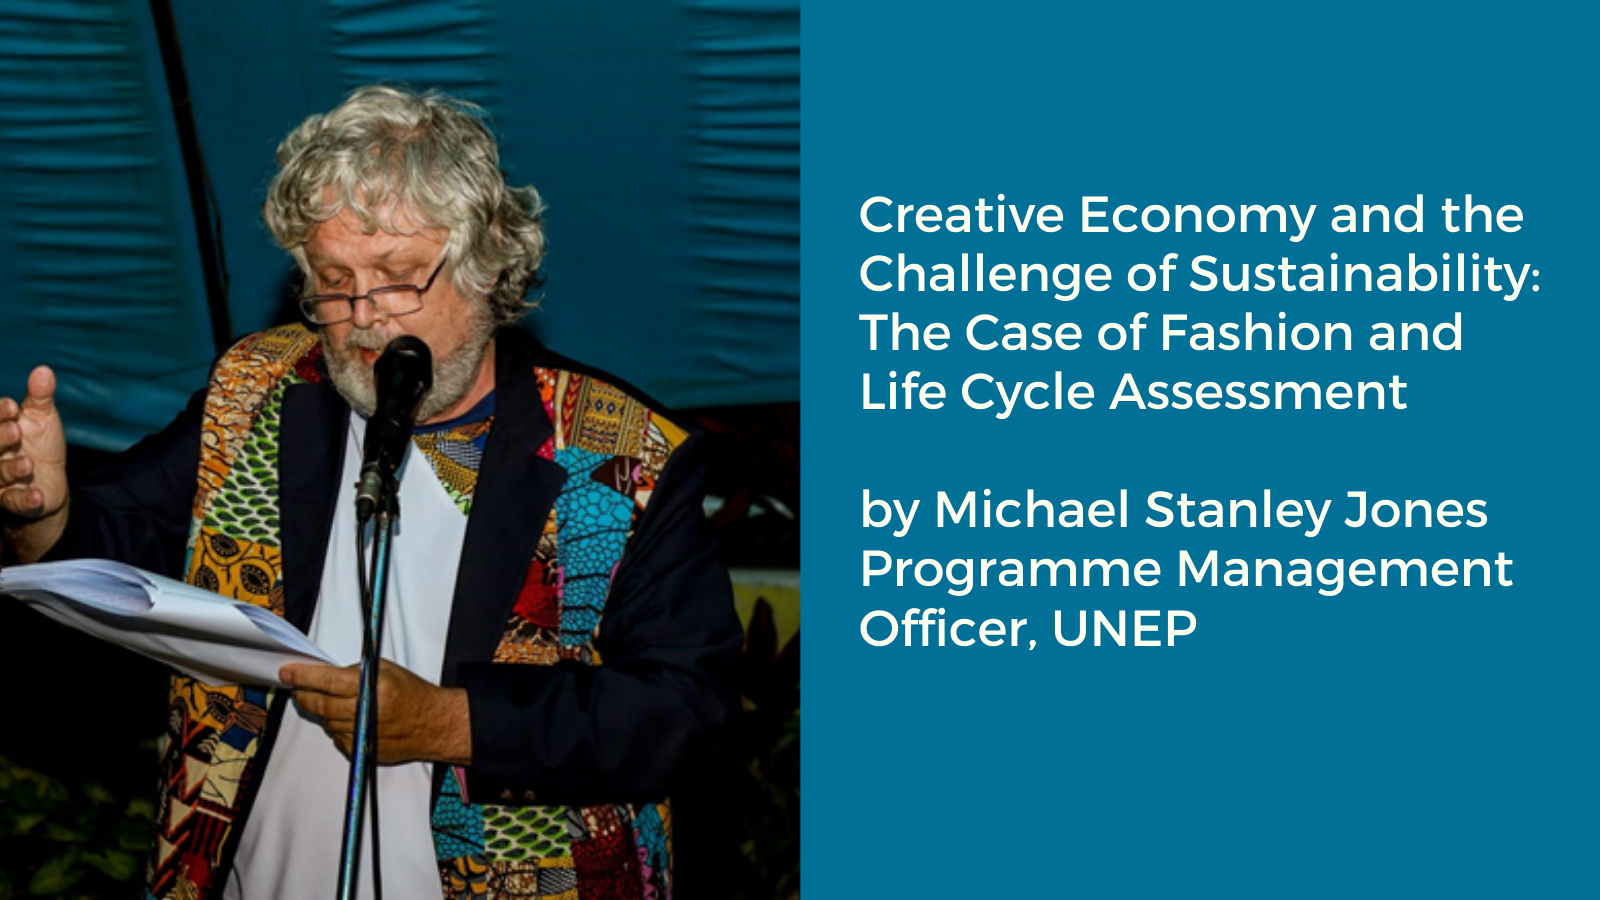 Creative Economy and the Challenge of Sustainability: the Case of Fashion and Lifecycle Assessment